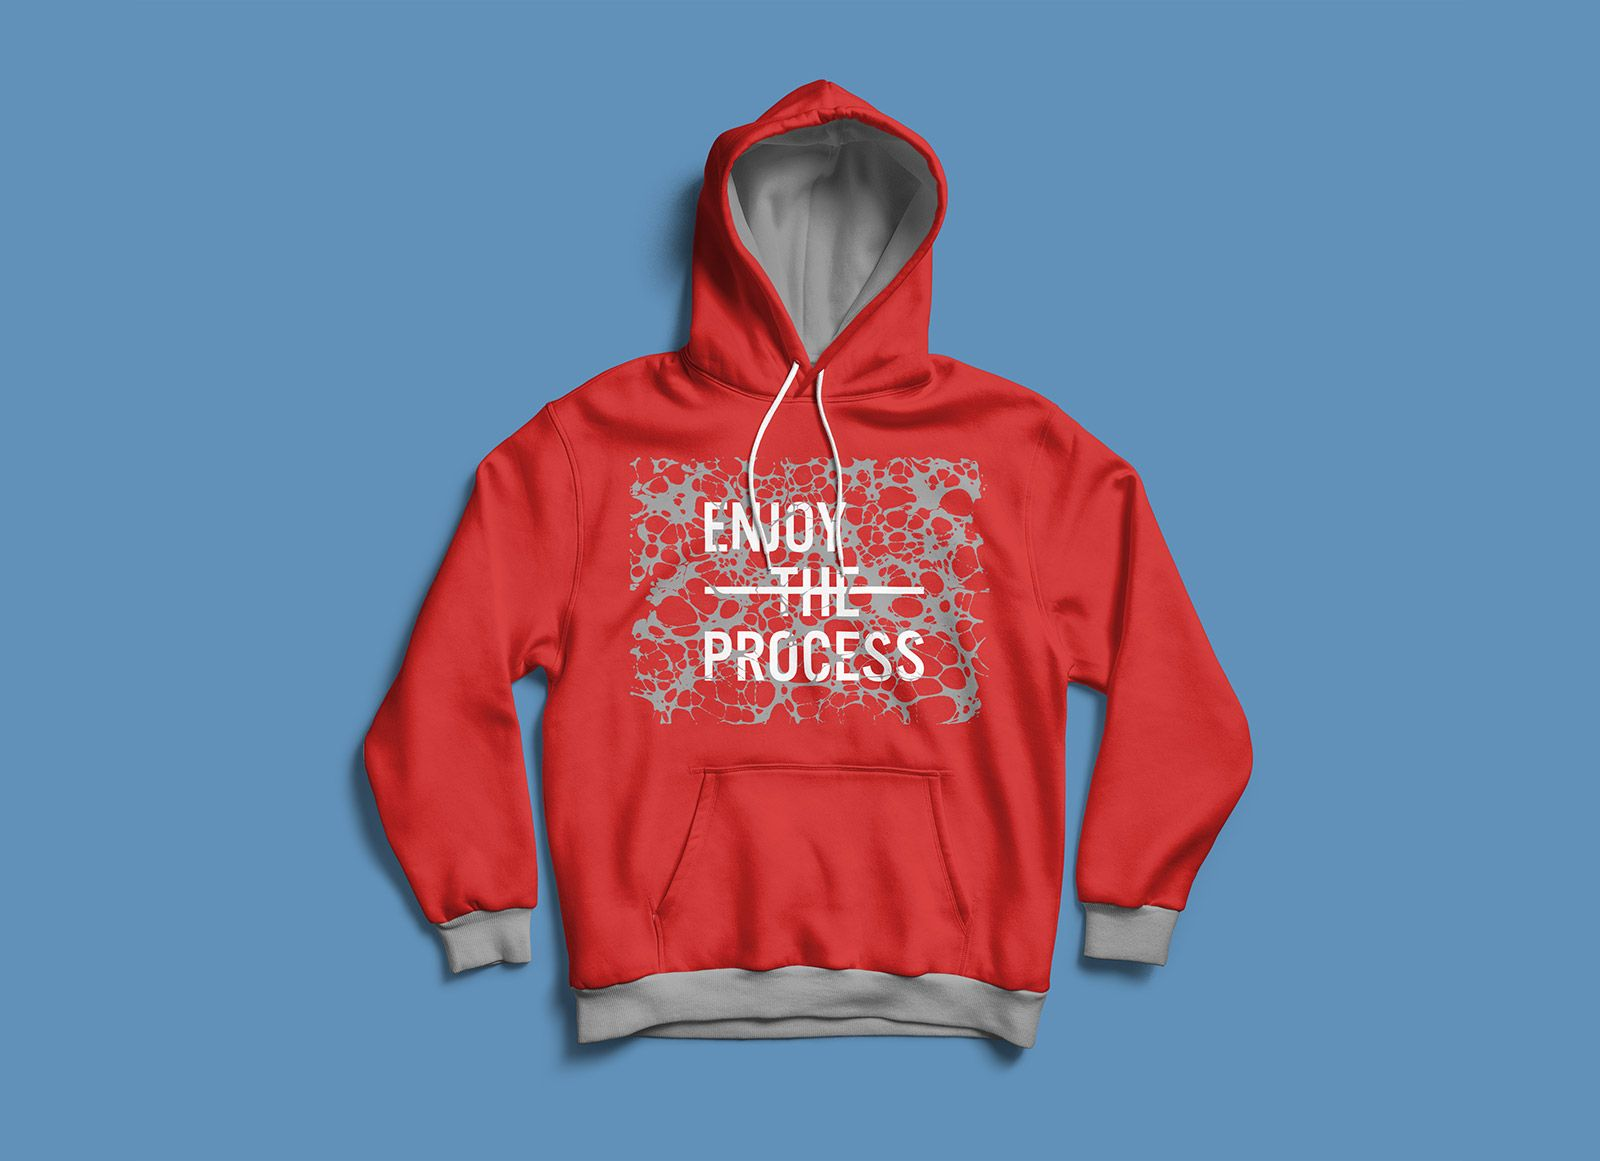 Download A High Quality With Detailed Image Depth Full Sleeves Hoodie Mockup With Front And Backside Psd There Are Few Customization Hoodies Free Shirts Hoodie Mockup